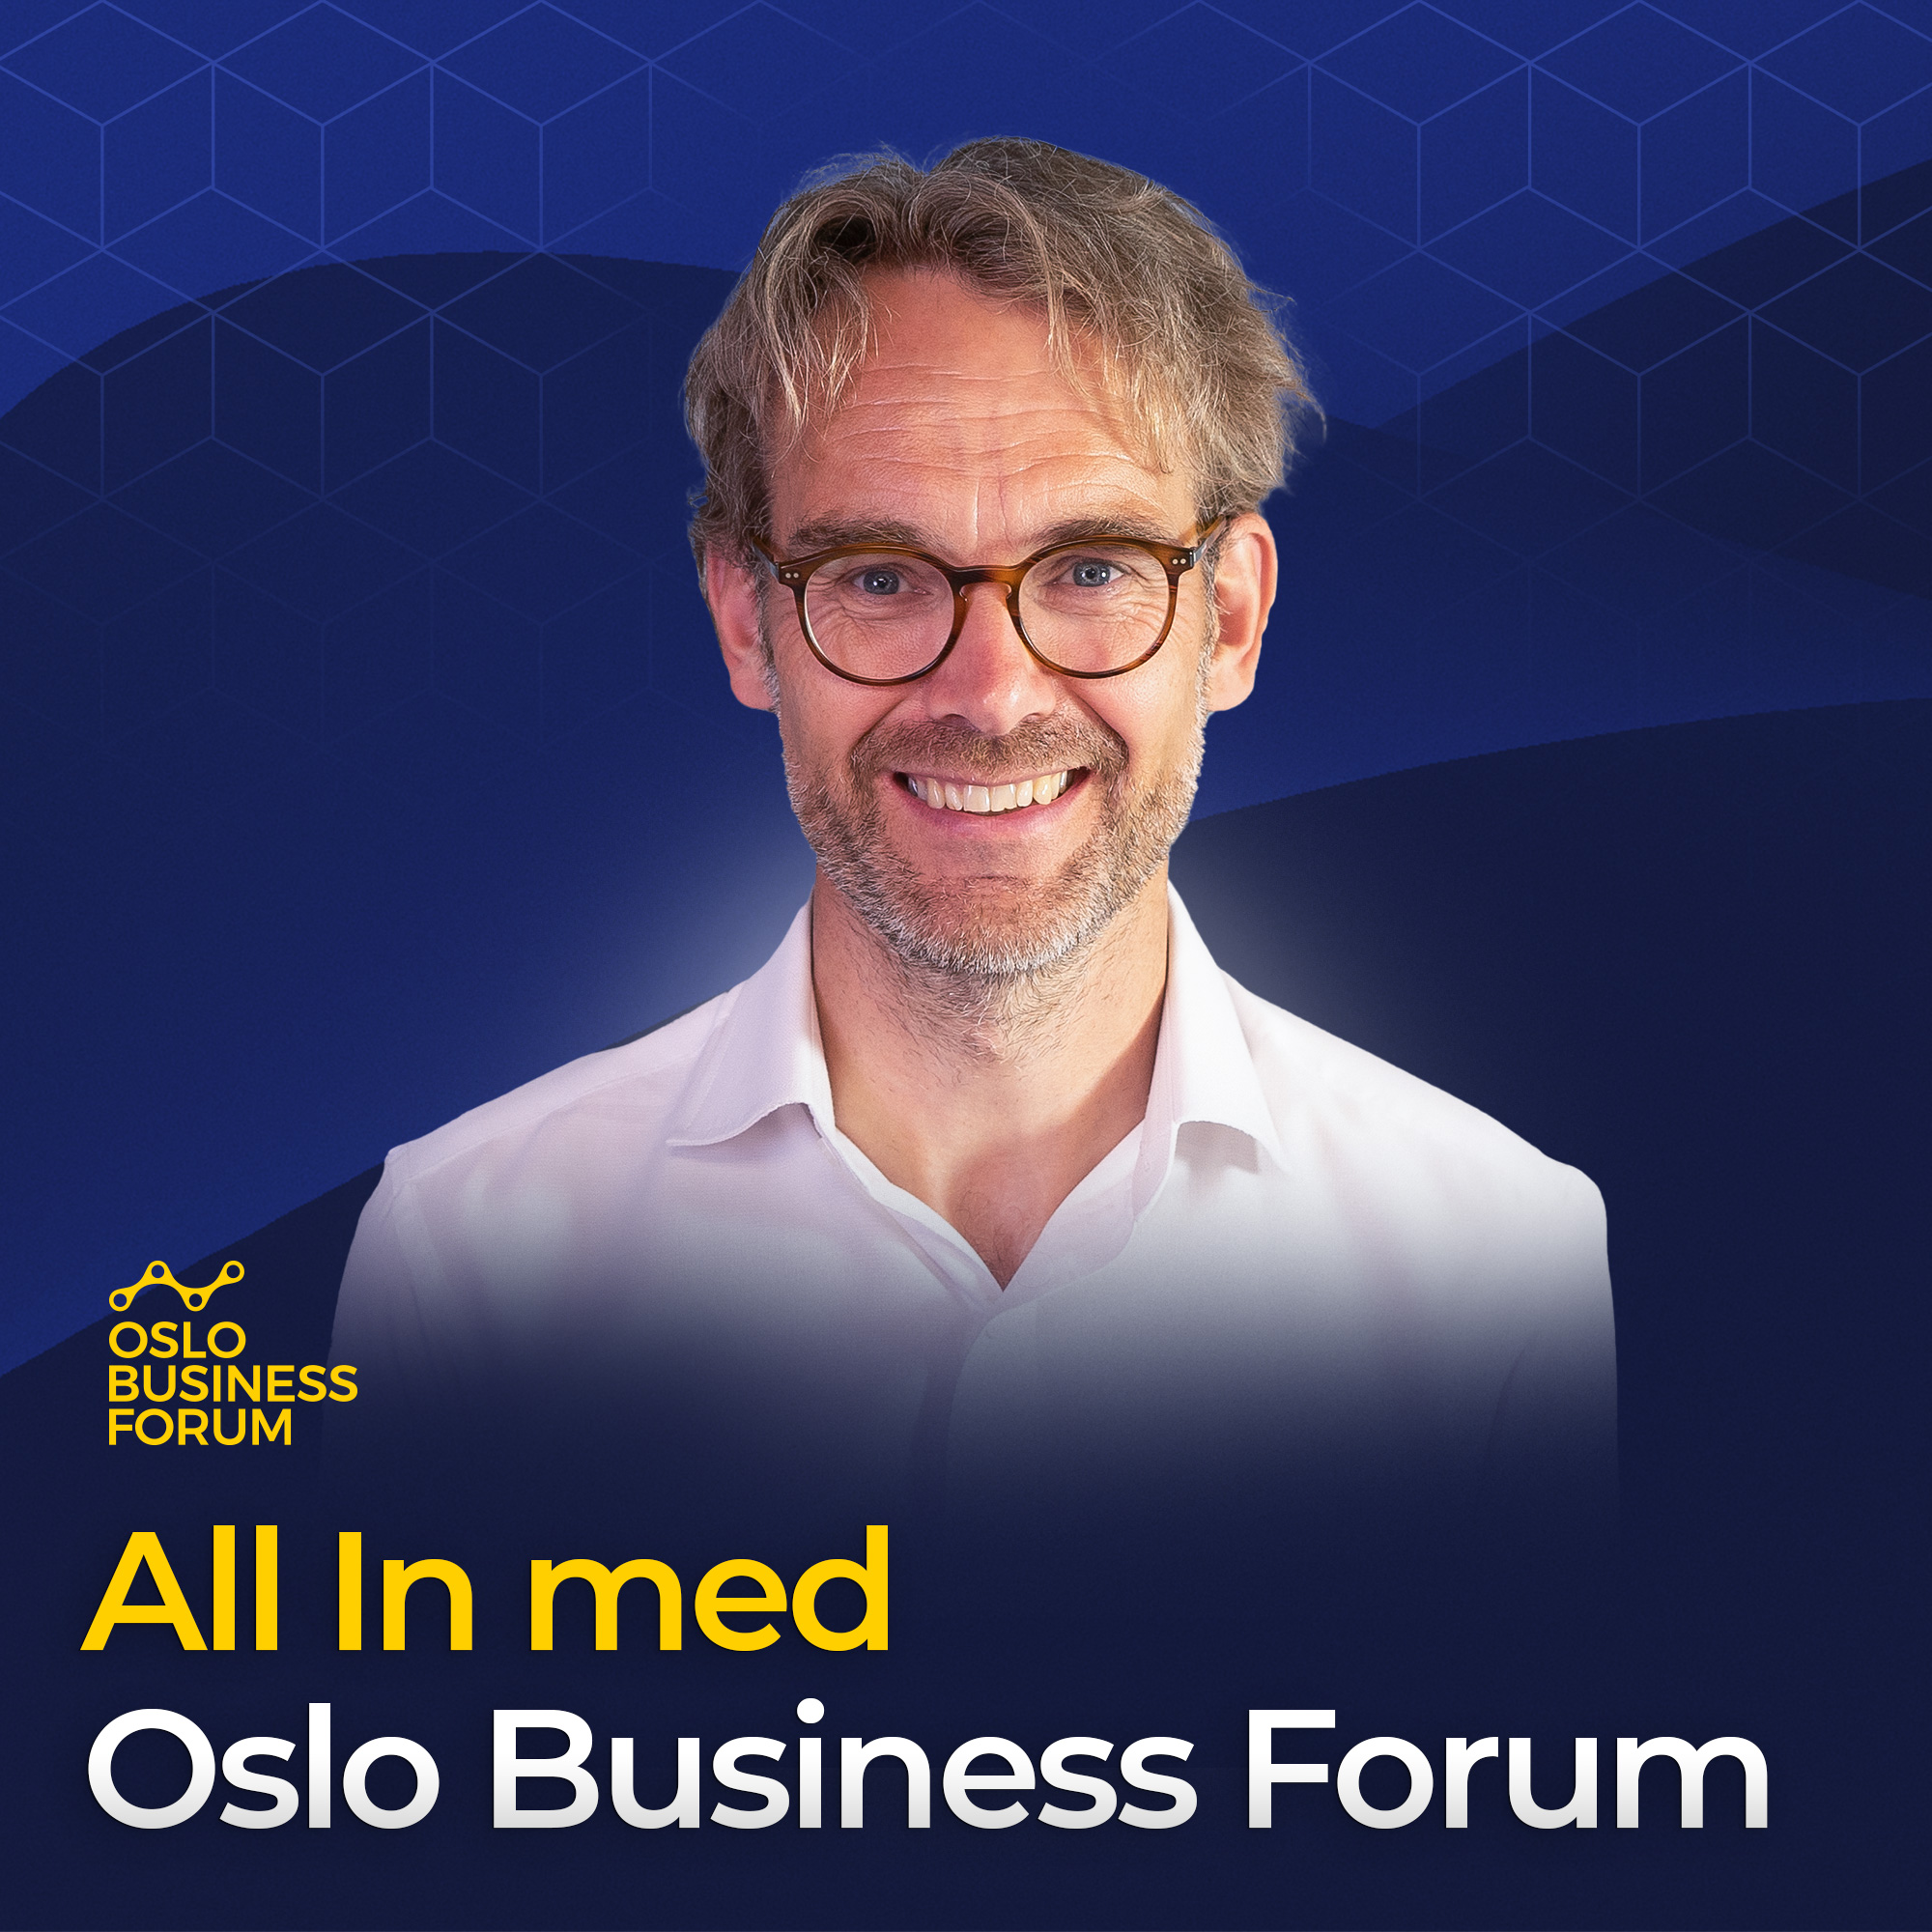 All-In-med-Oslo-Business-Forum---Cover